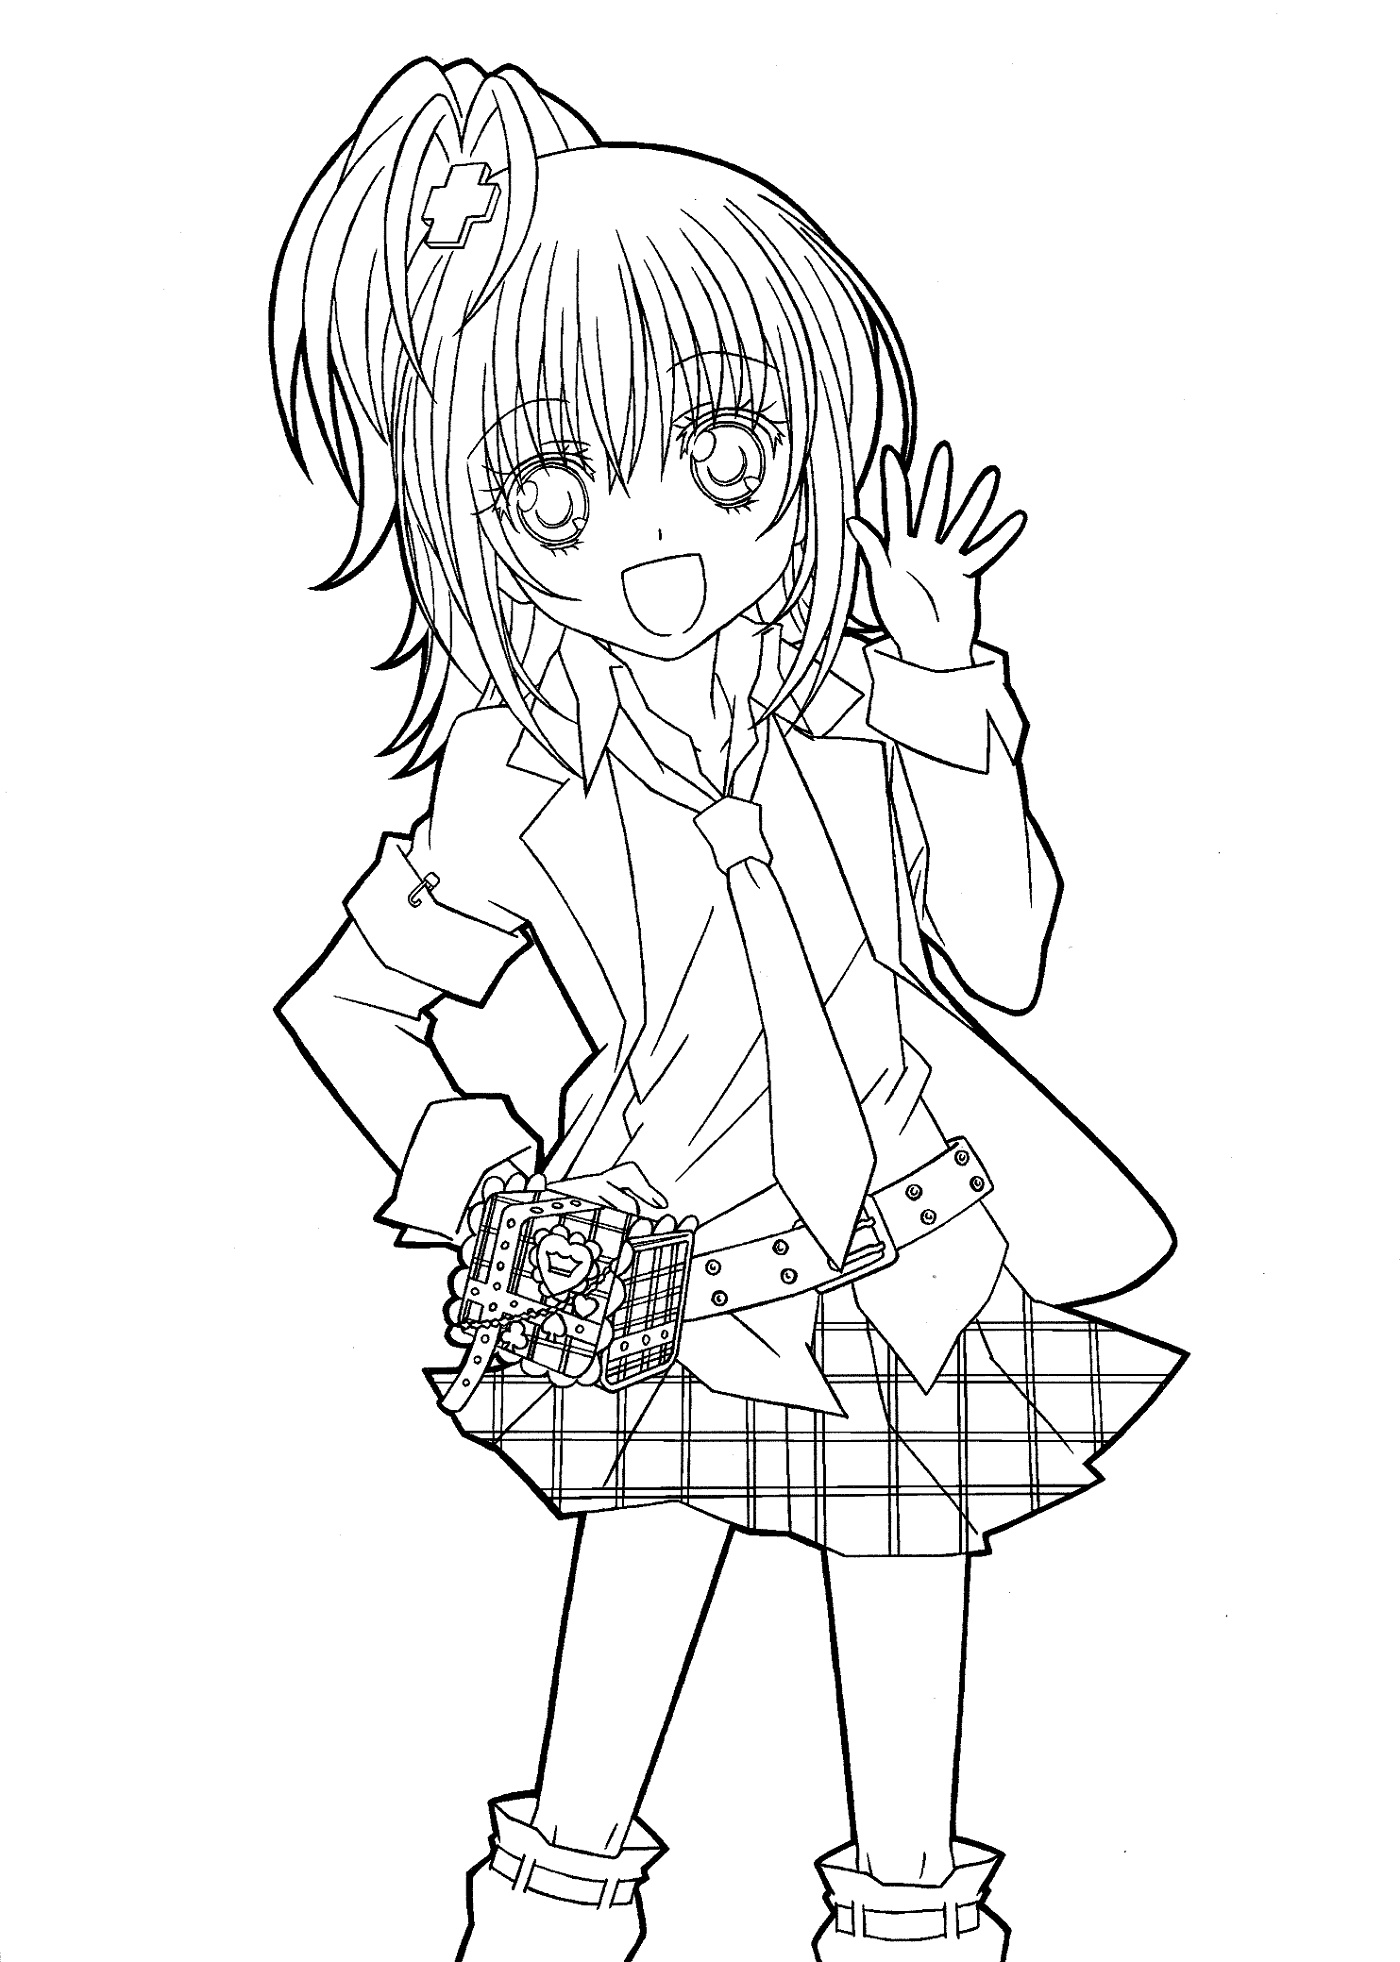 anime girl coloring pages to print anime coloring pages best coloring pages for kids print to anime girl coloring pages